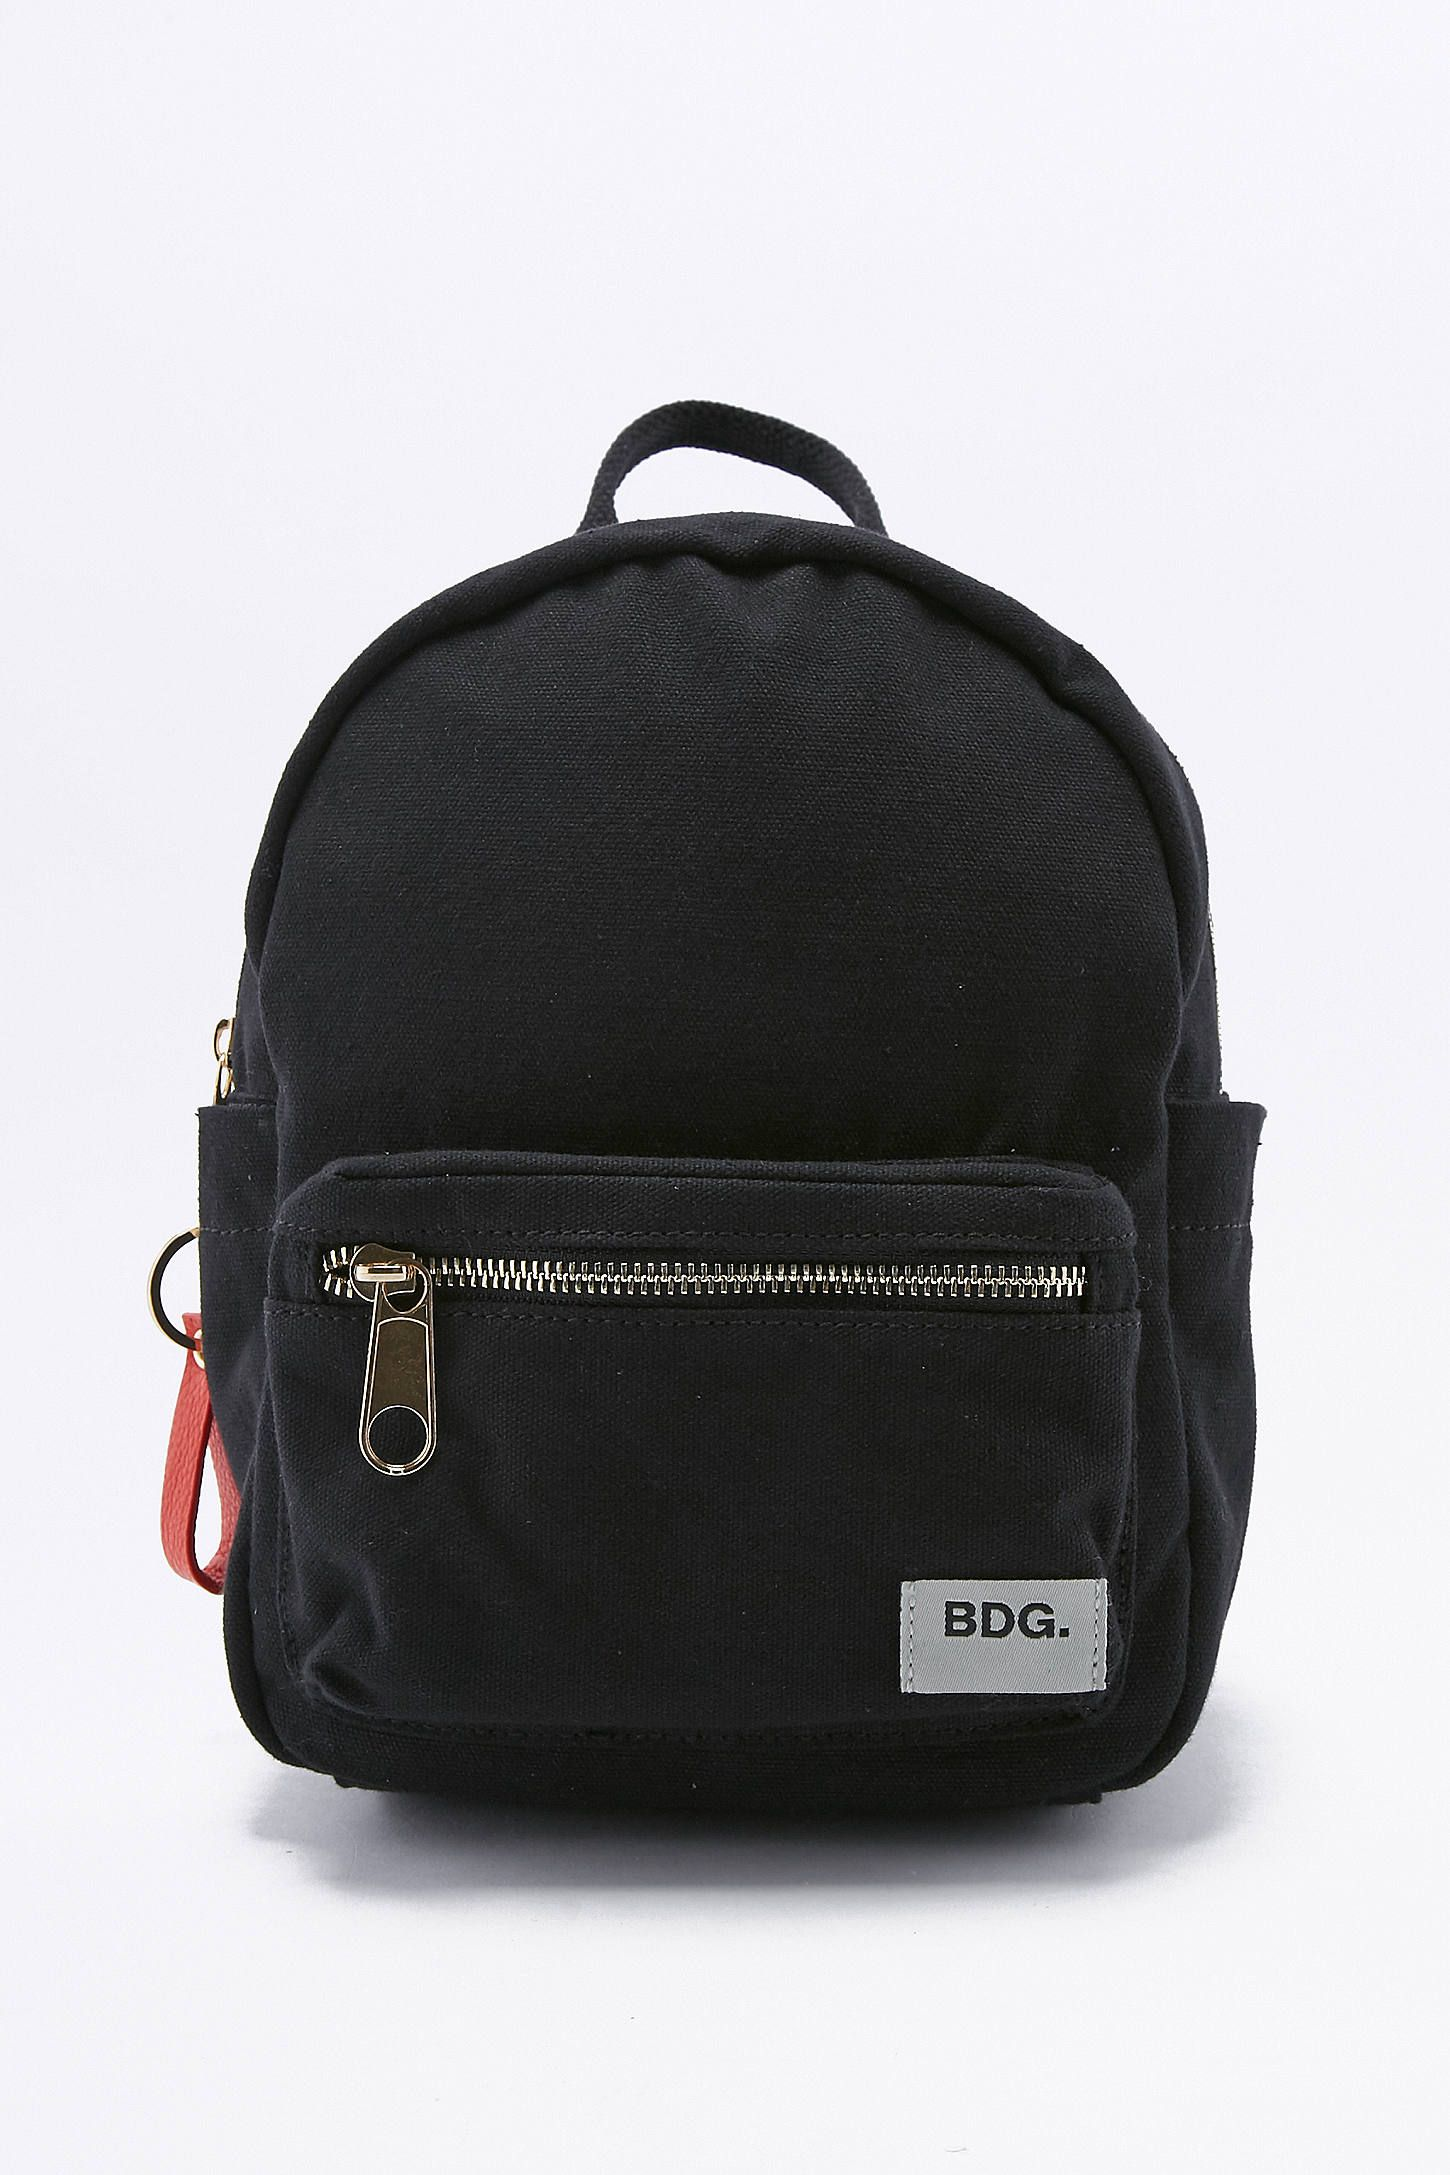 4274fec96 Shop BDG Canvas Mini Backpack at Urban Outfitters today. We carry all the  latest styles, colours and brands for you to choose from right here.